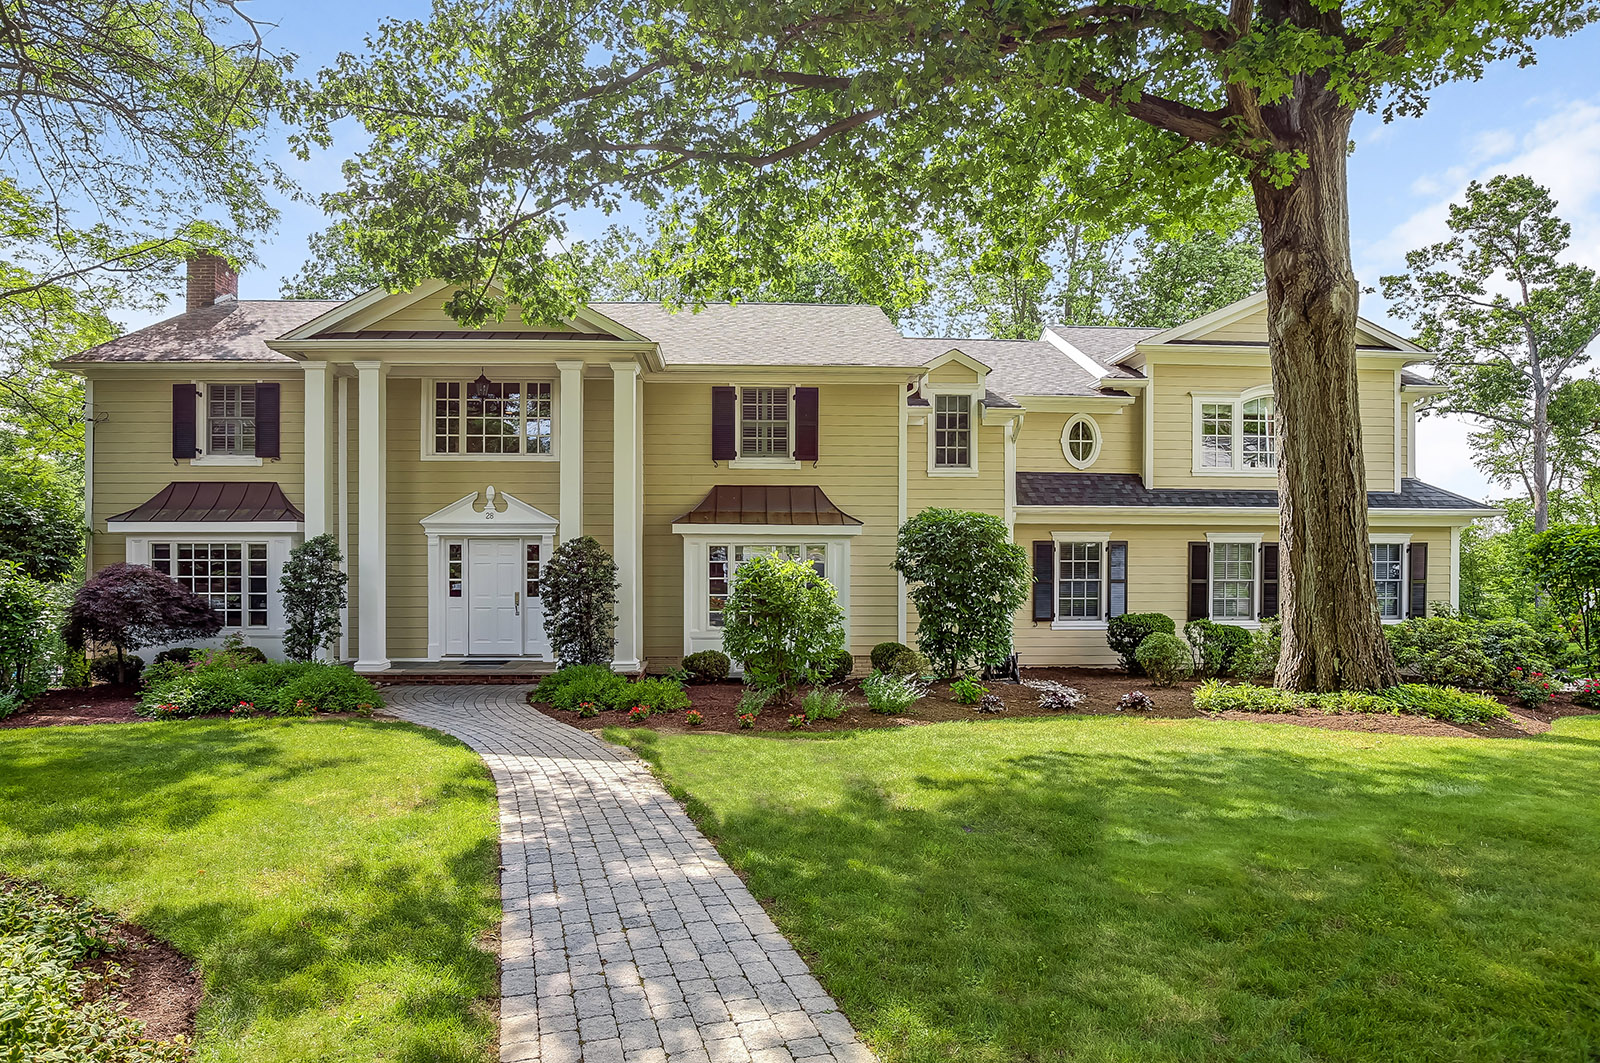 Single Family Home for Sale at Impressive Classic Colonial 28 Farbrook Drive Short Hills, New Jersey 07078 United States